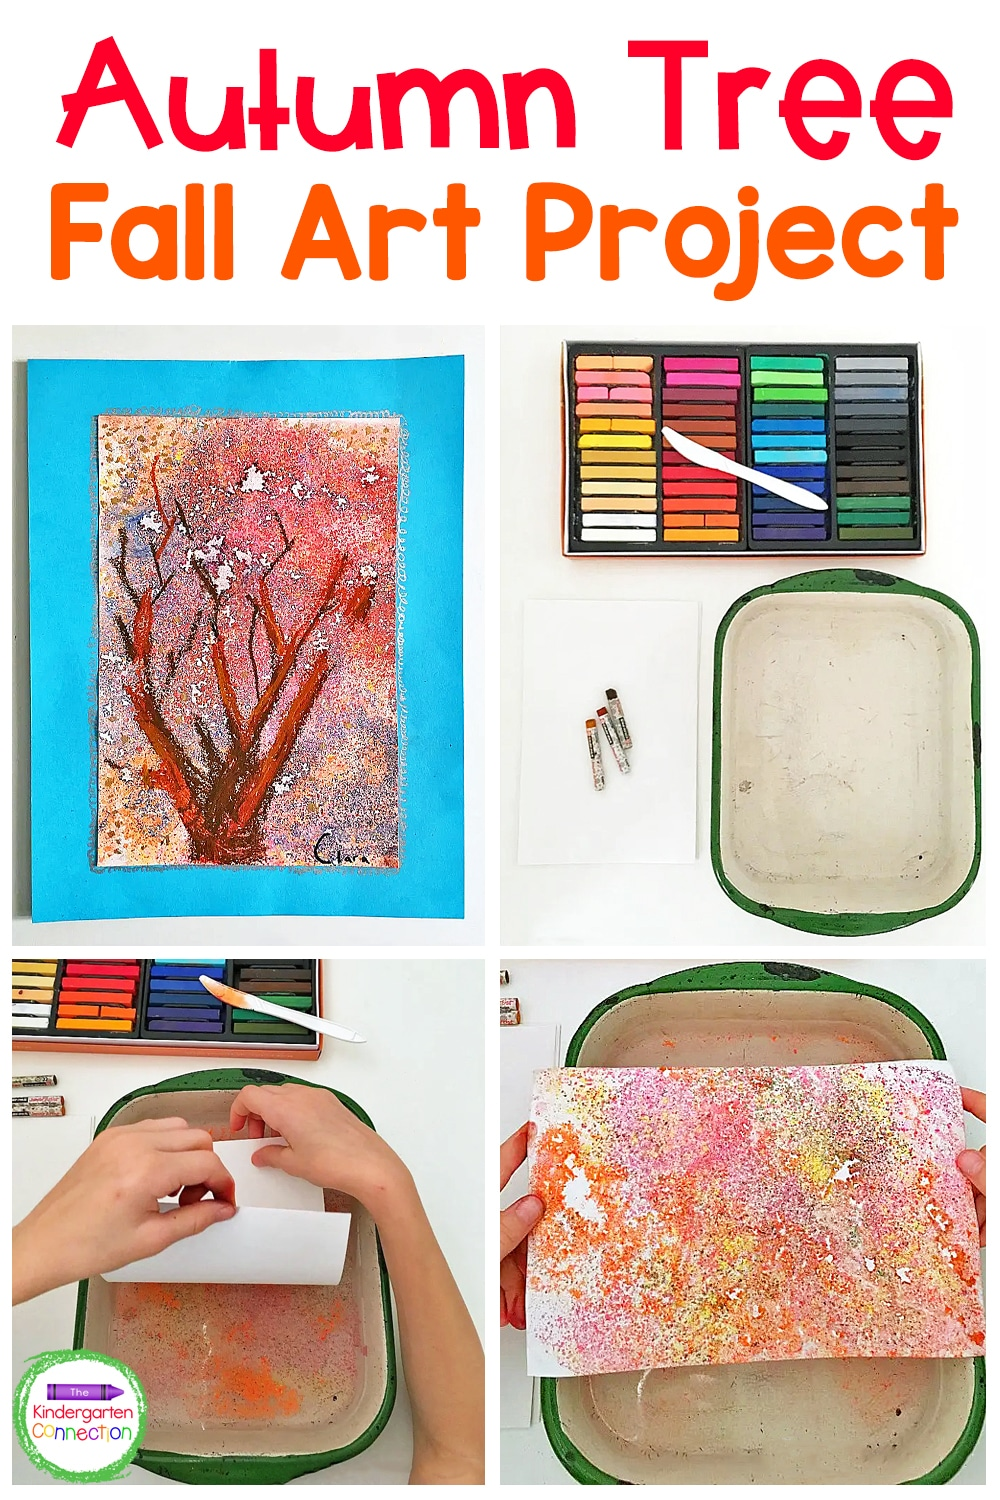 Looking for a fun fall craft to do with your kids? This Autumn Tree Fall Art Project looks tricky, but is actually super simple and fun!